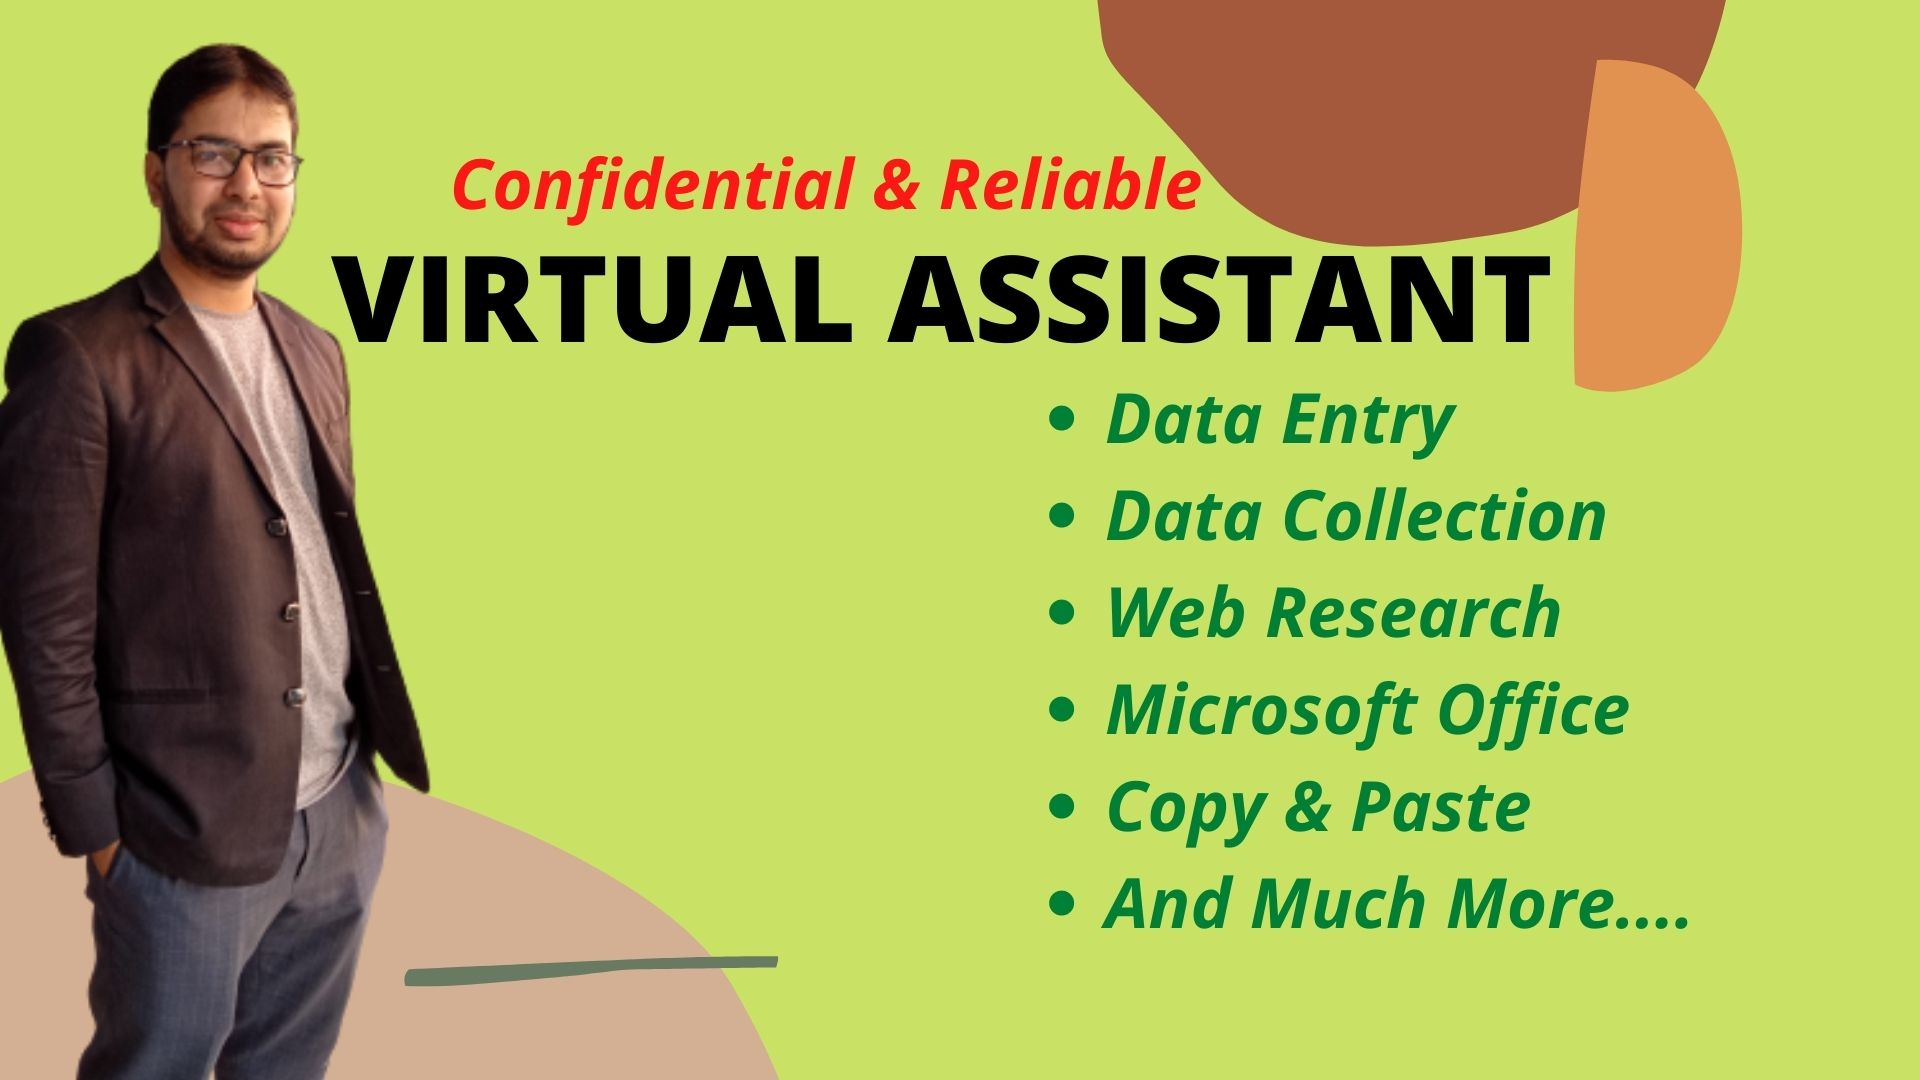 I want to be your professional virtual assistant